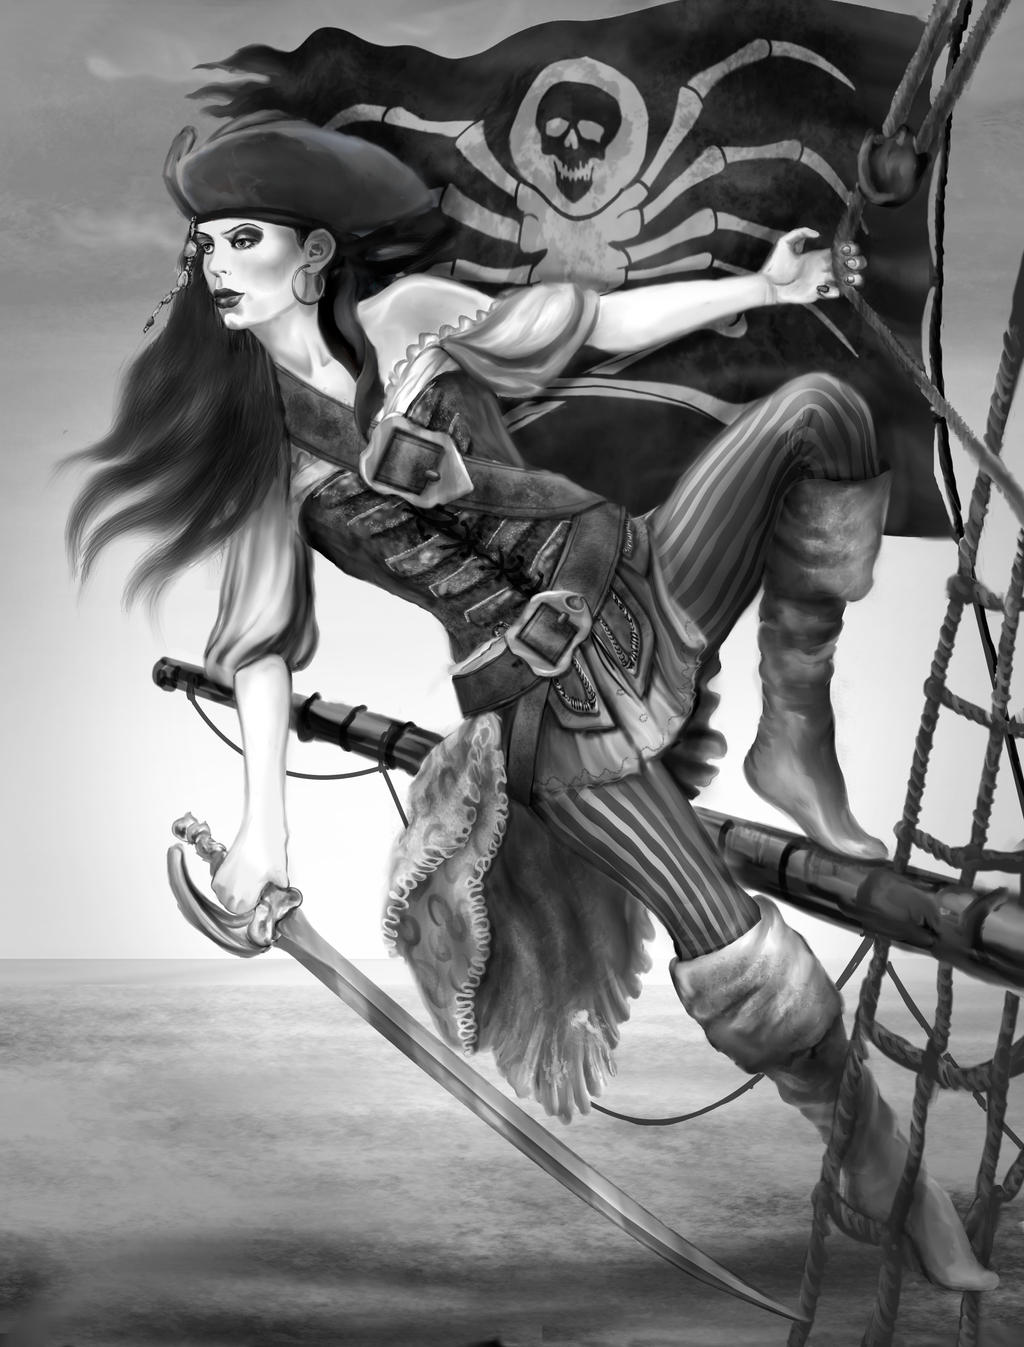 Pirate girl drawing